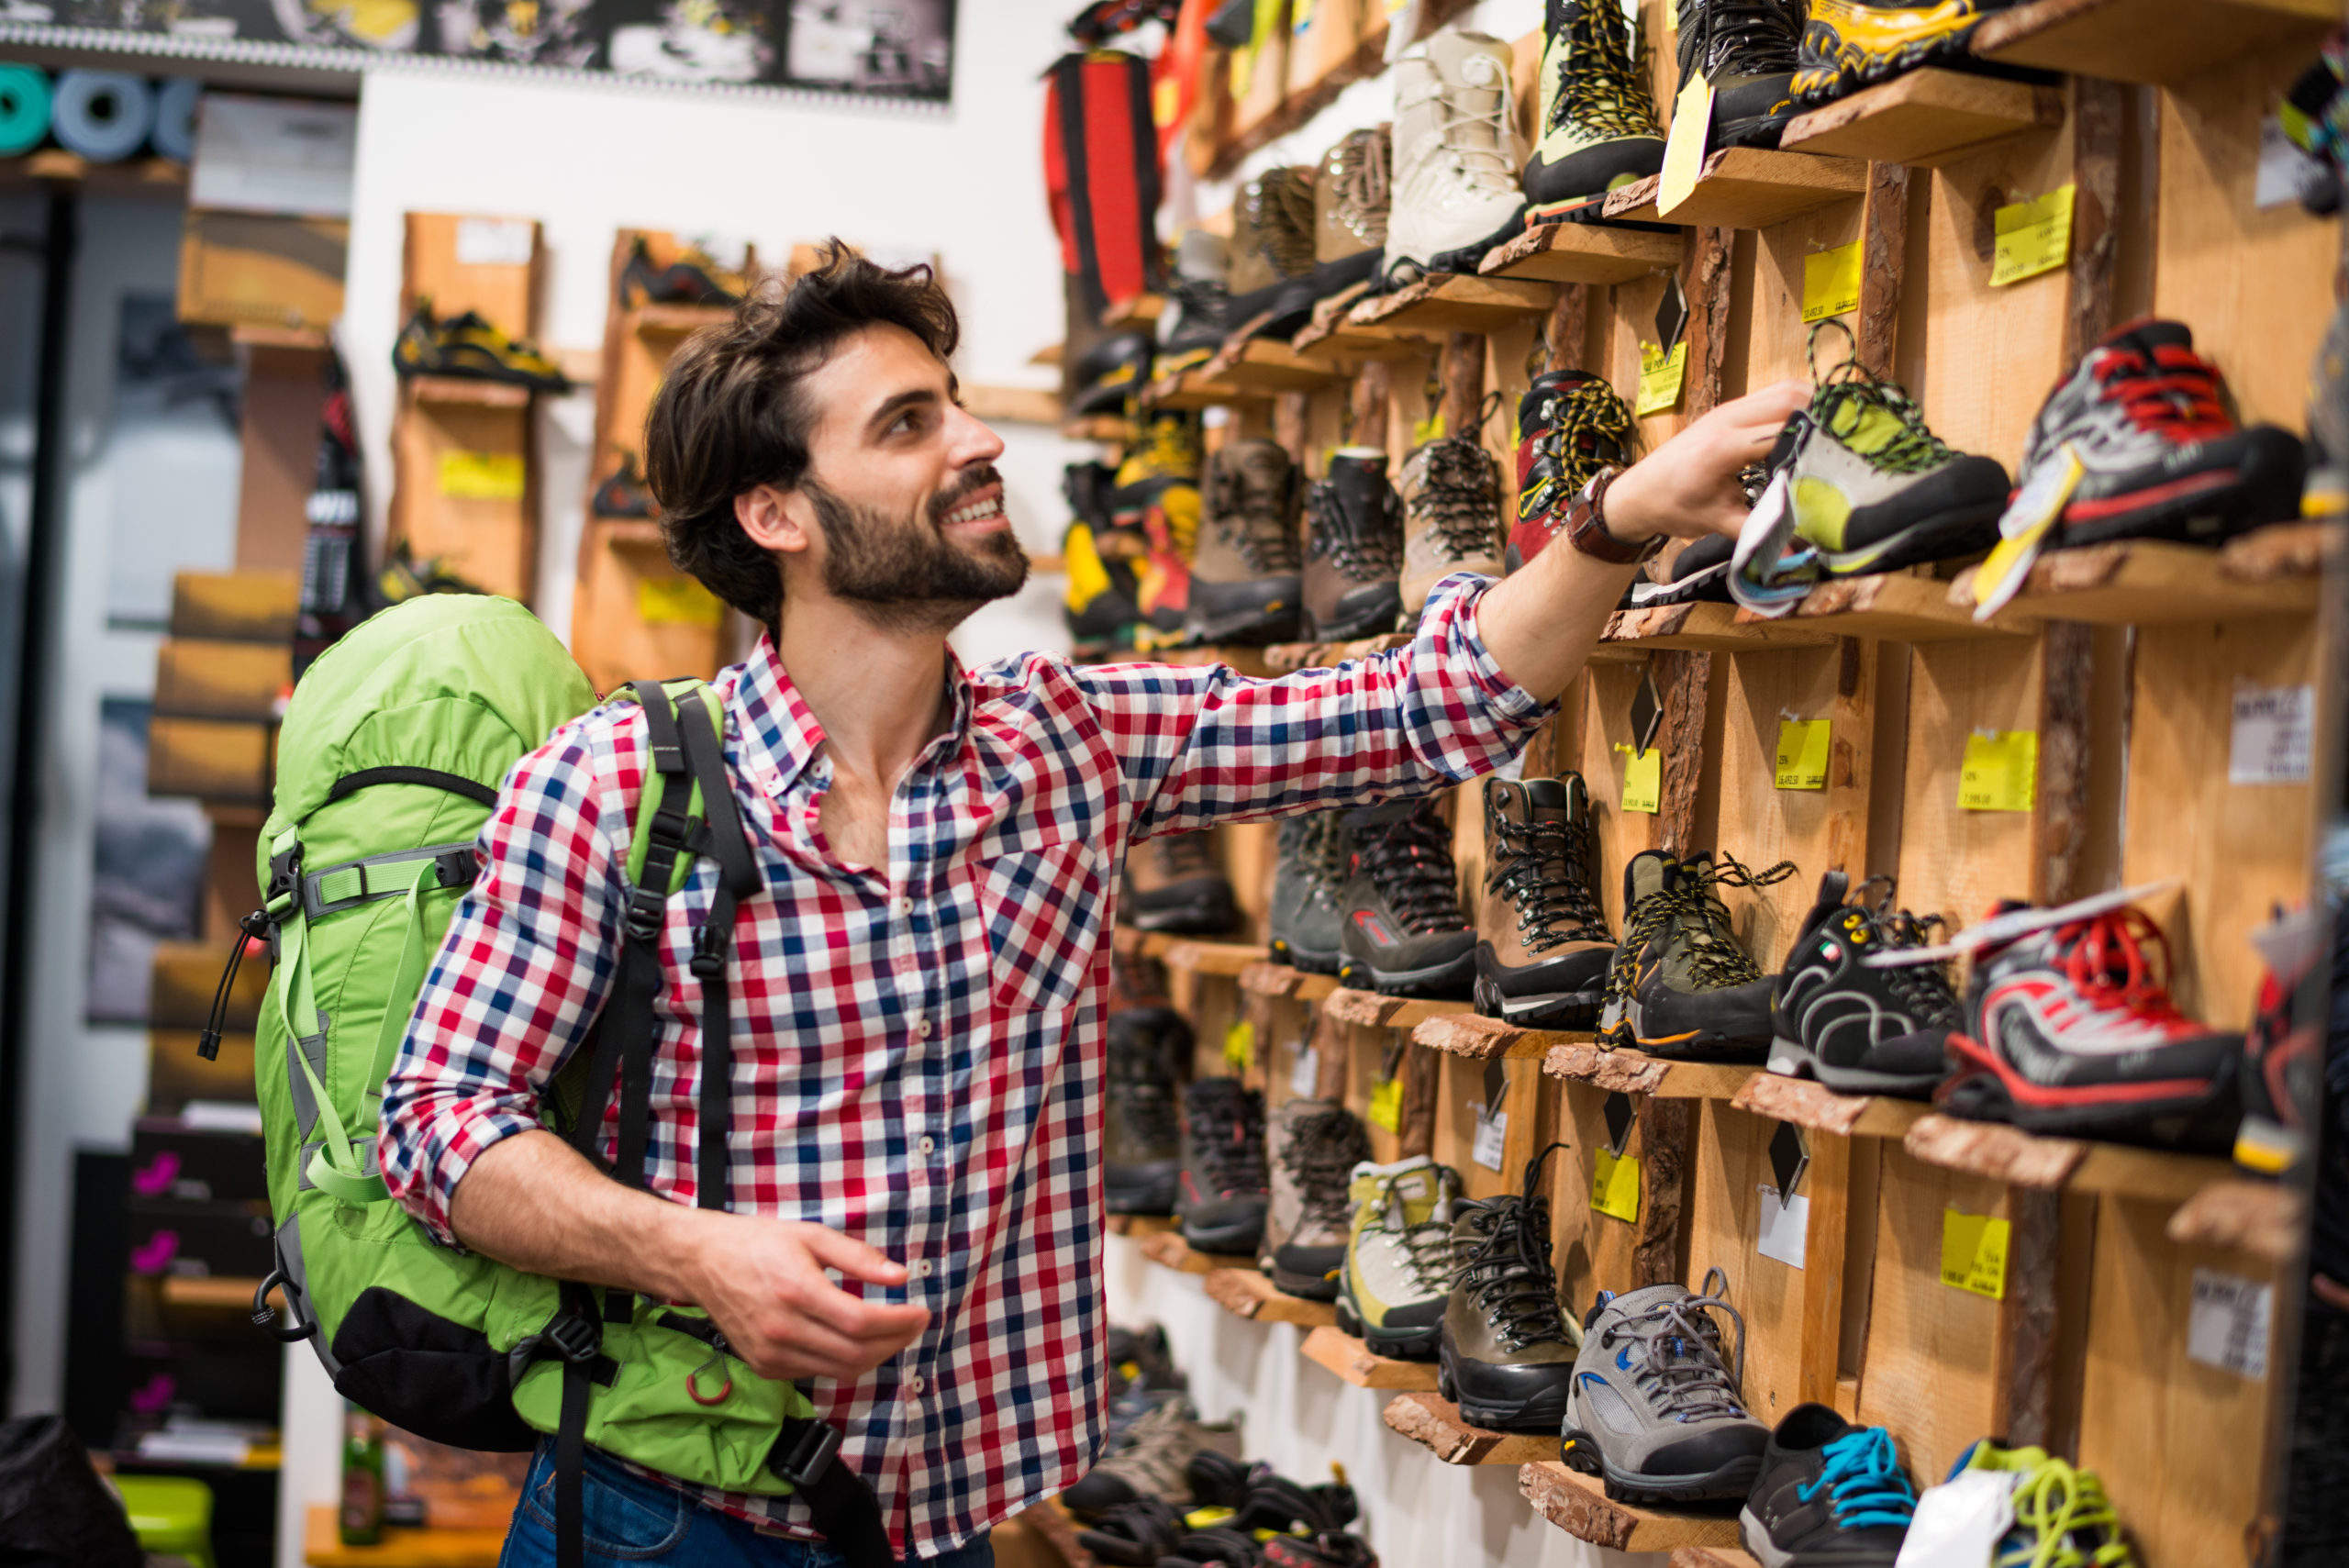 Man shopping for hiking boots | sporting goods stores in Arlington, VA